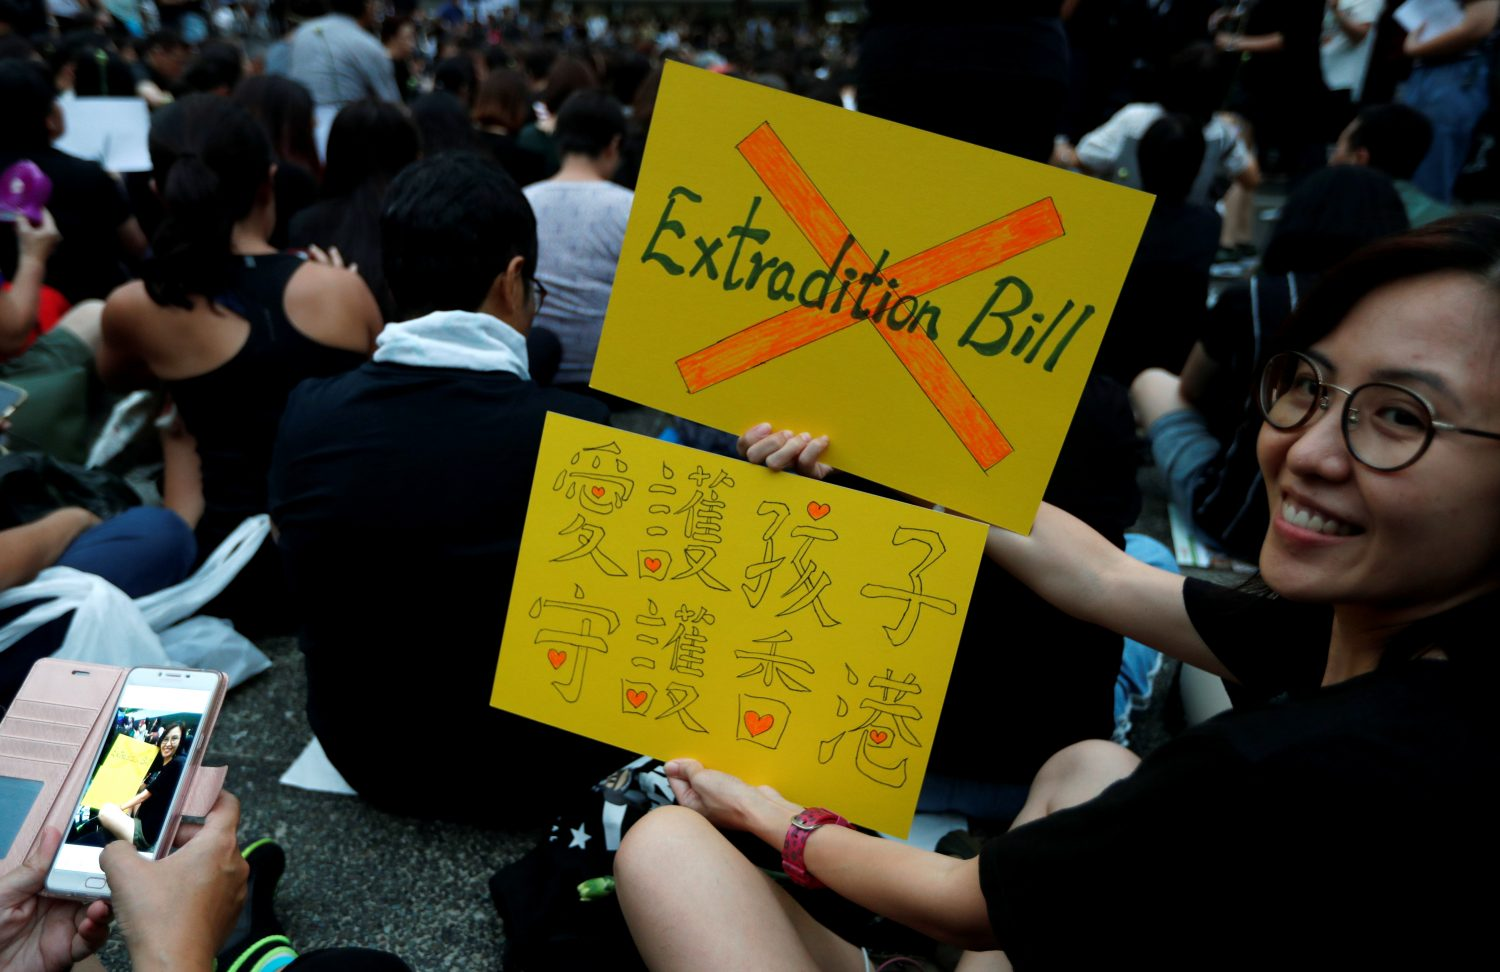 A woman holds placards as she attends a rally in support of demonstrators protesting against proposed extradition bill with China, in Hong Kong, China, June 14, 2019. REUTERS/Jorge Silva